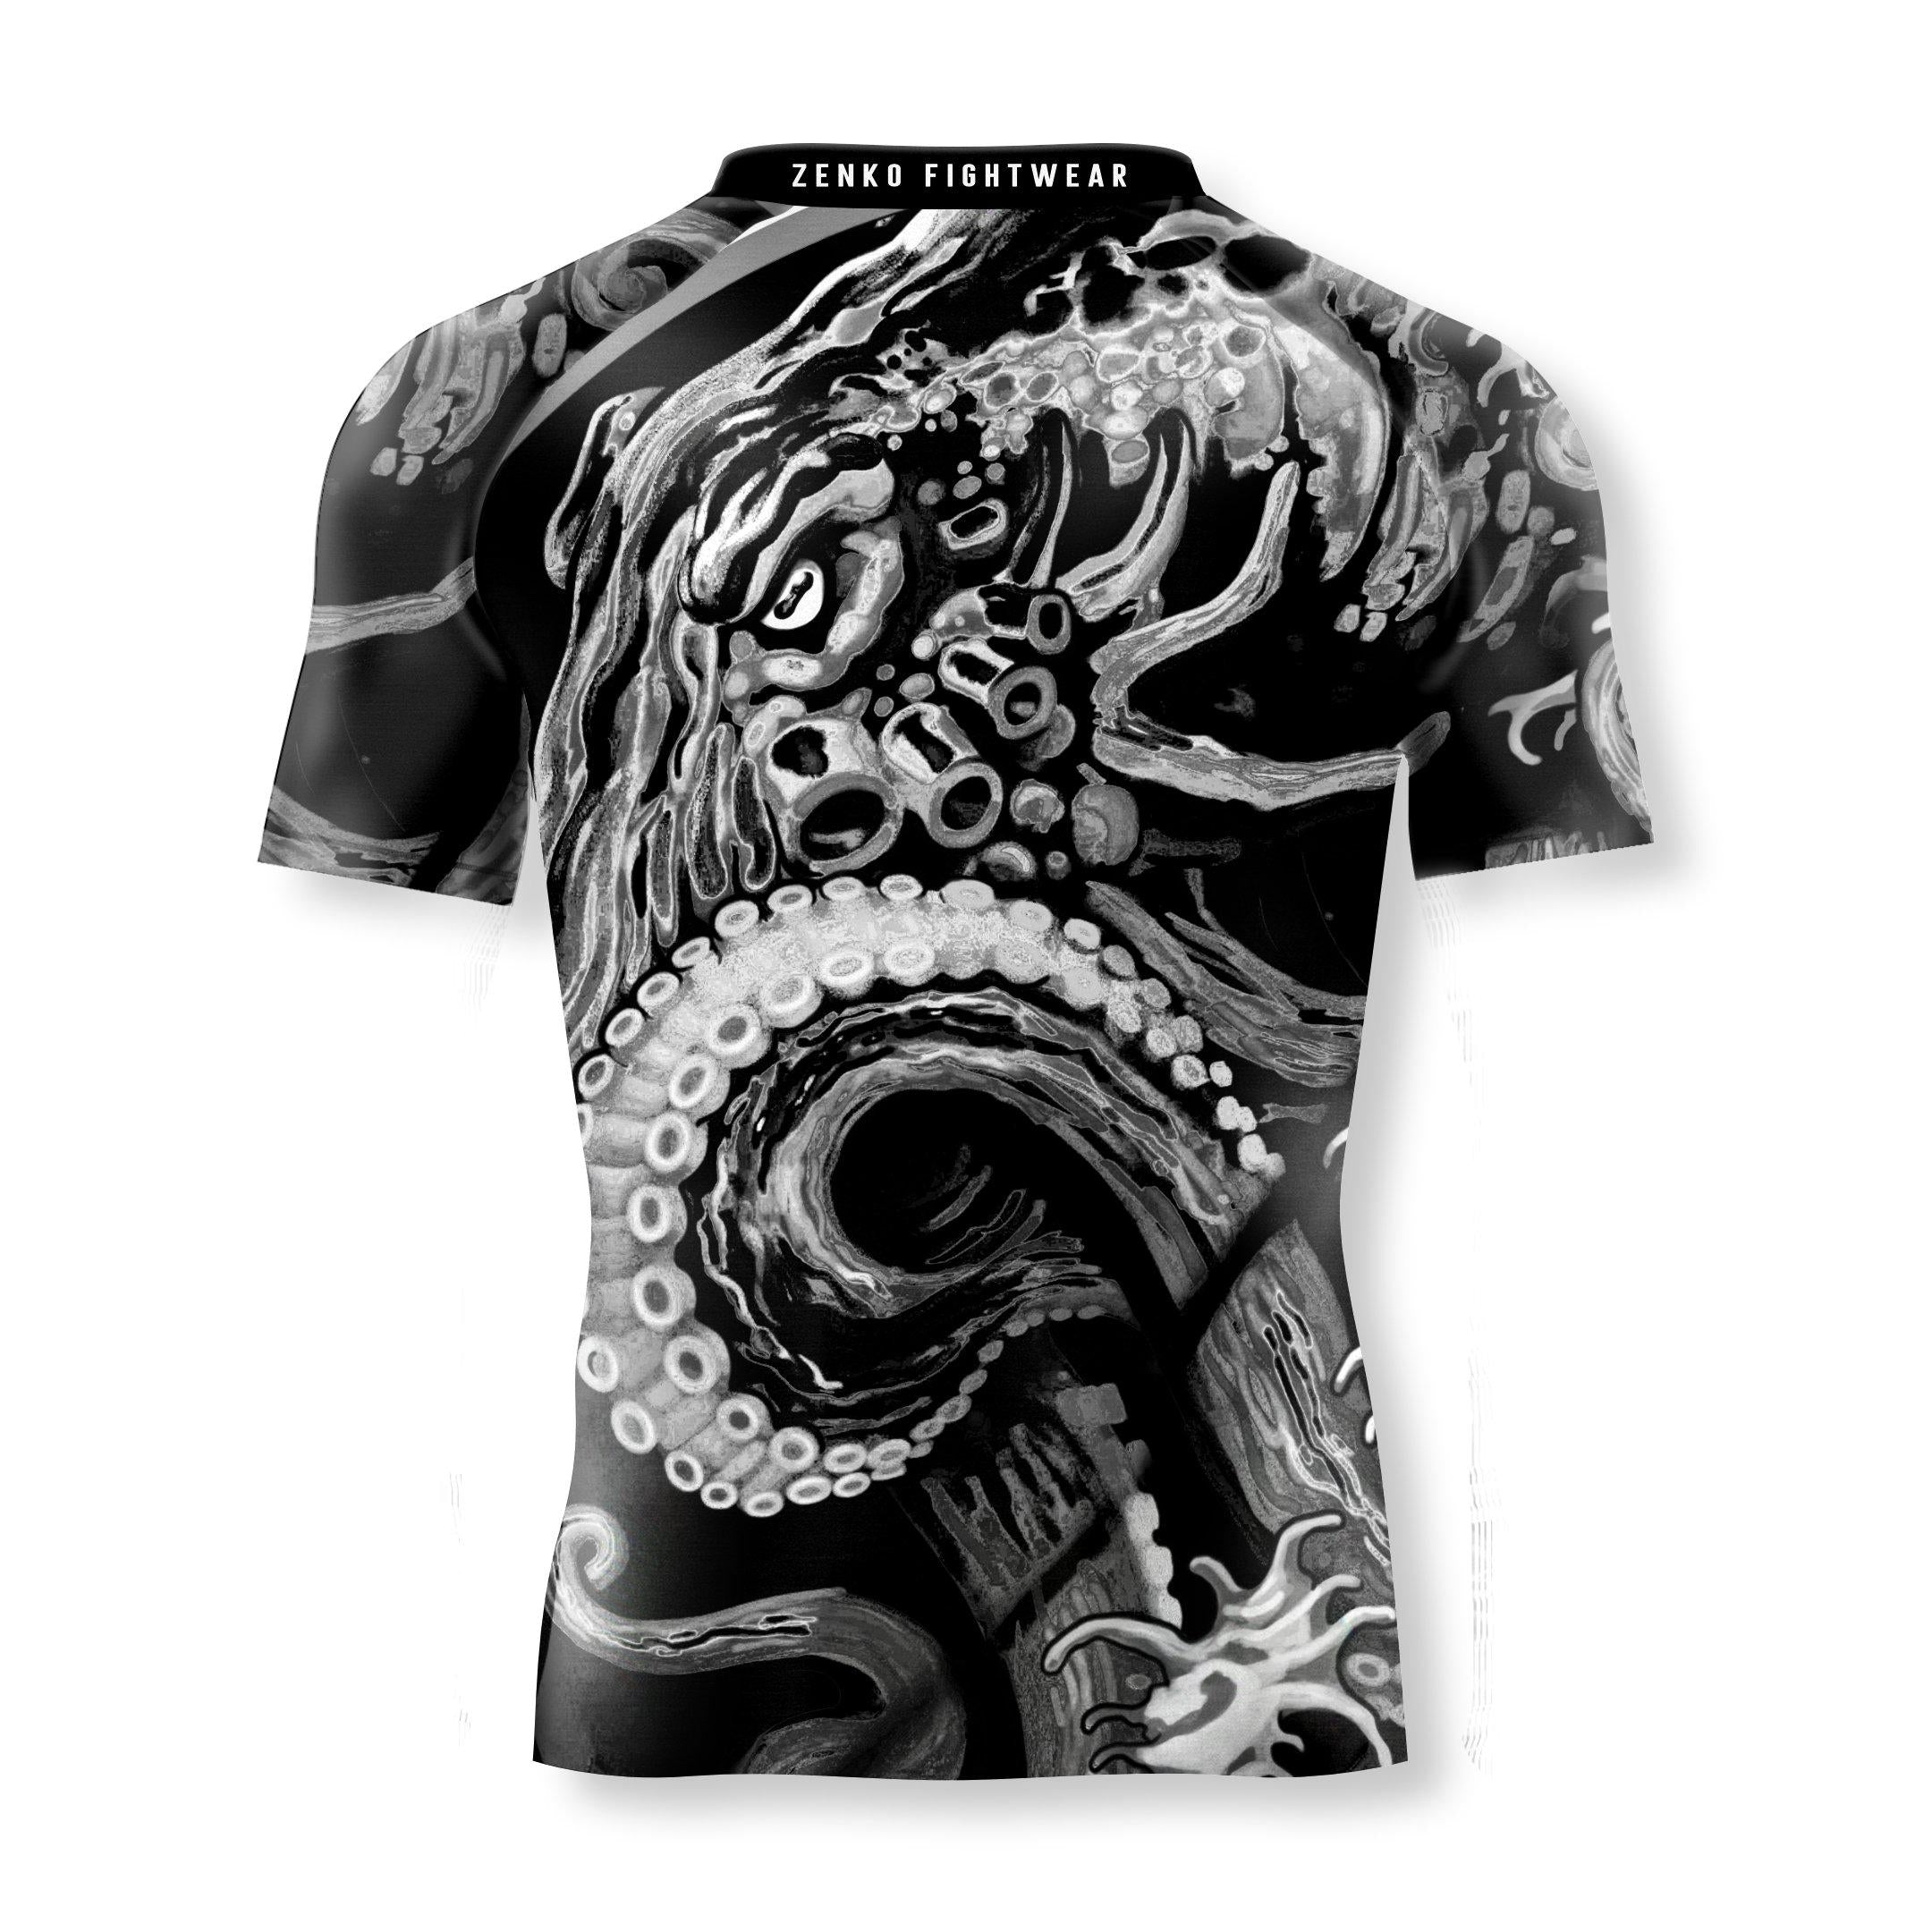 Monochrome Octopus Short Sleeve Rashguard - Zenko Fightwear